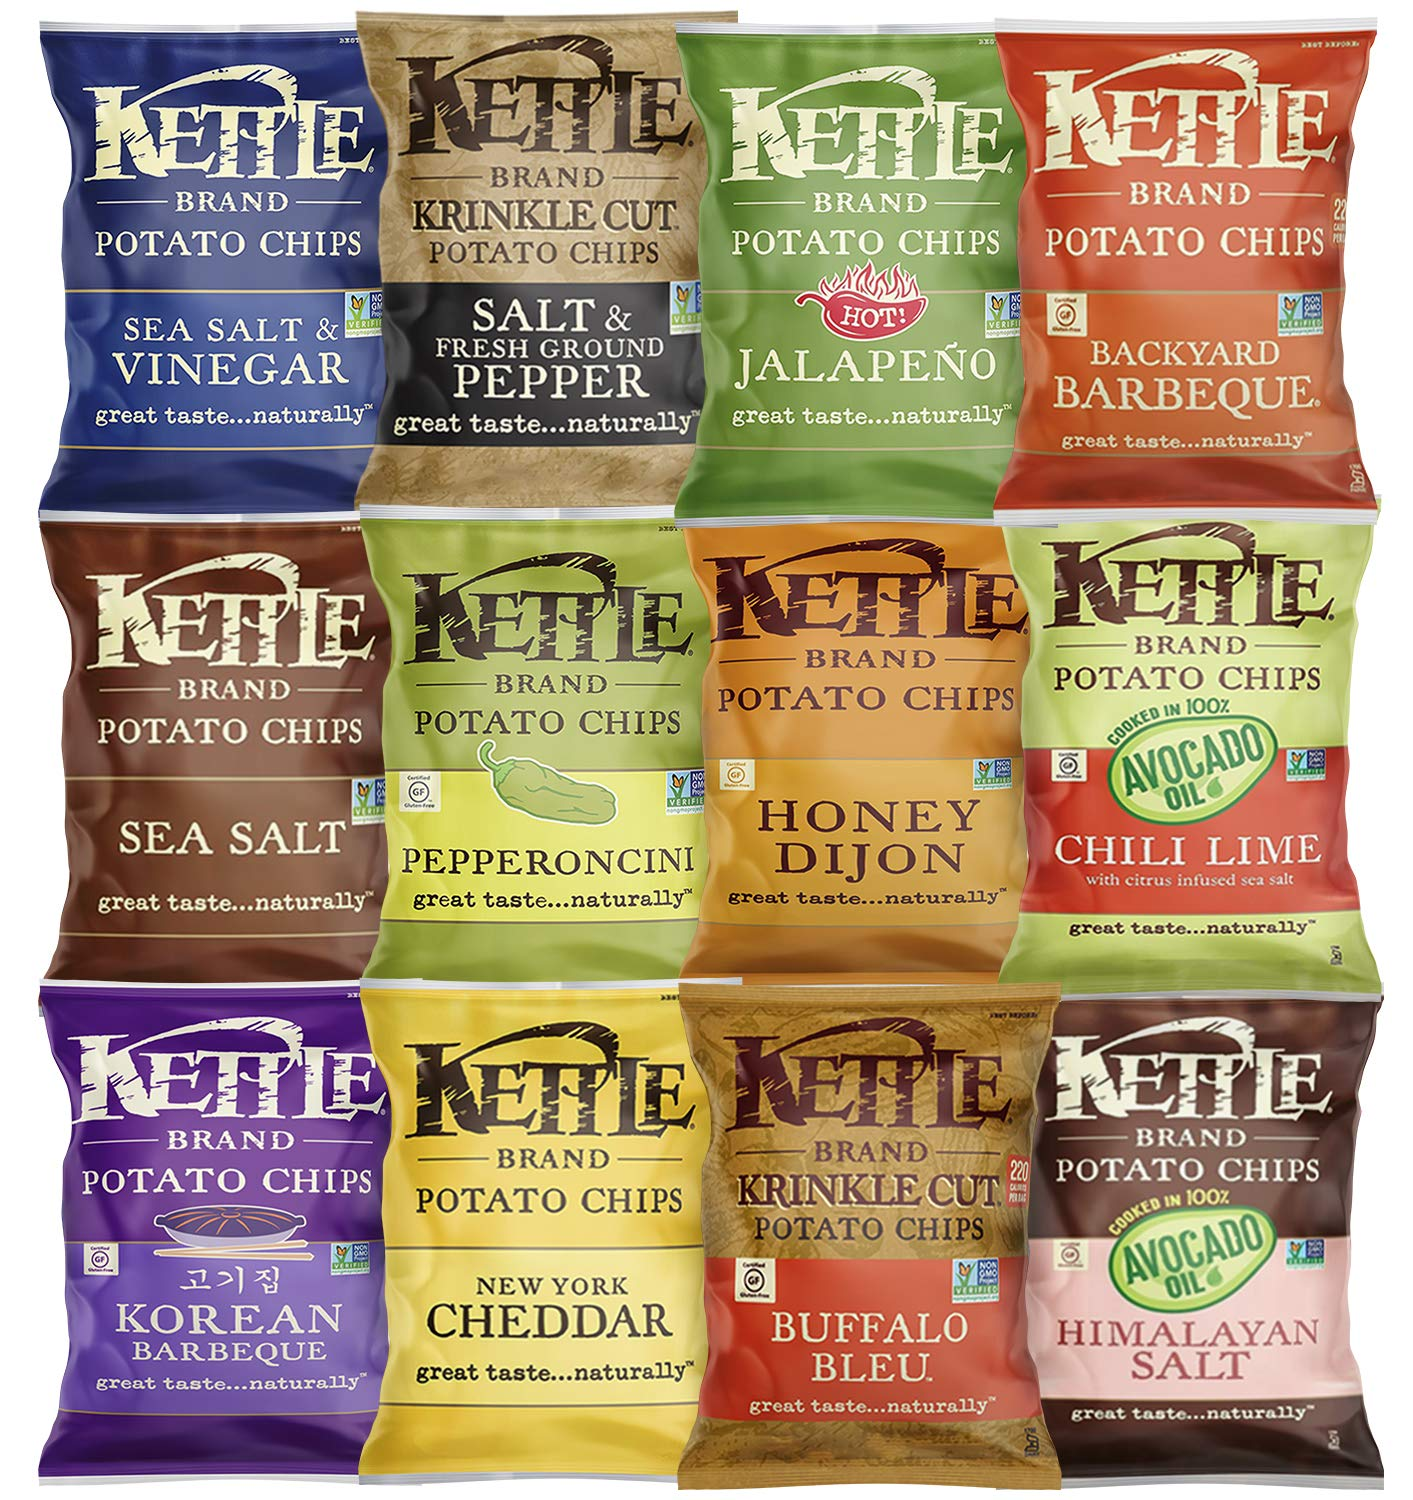 Kettle Brand Potato Chips, Individual Single Serve Bags, Many Different Flavors Sampler Variety Pack (12 Count) by Custom Varietea (Image #1)